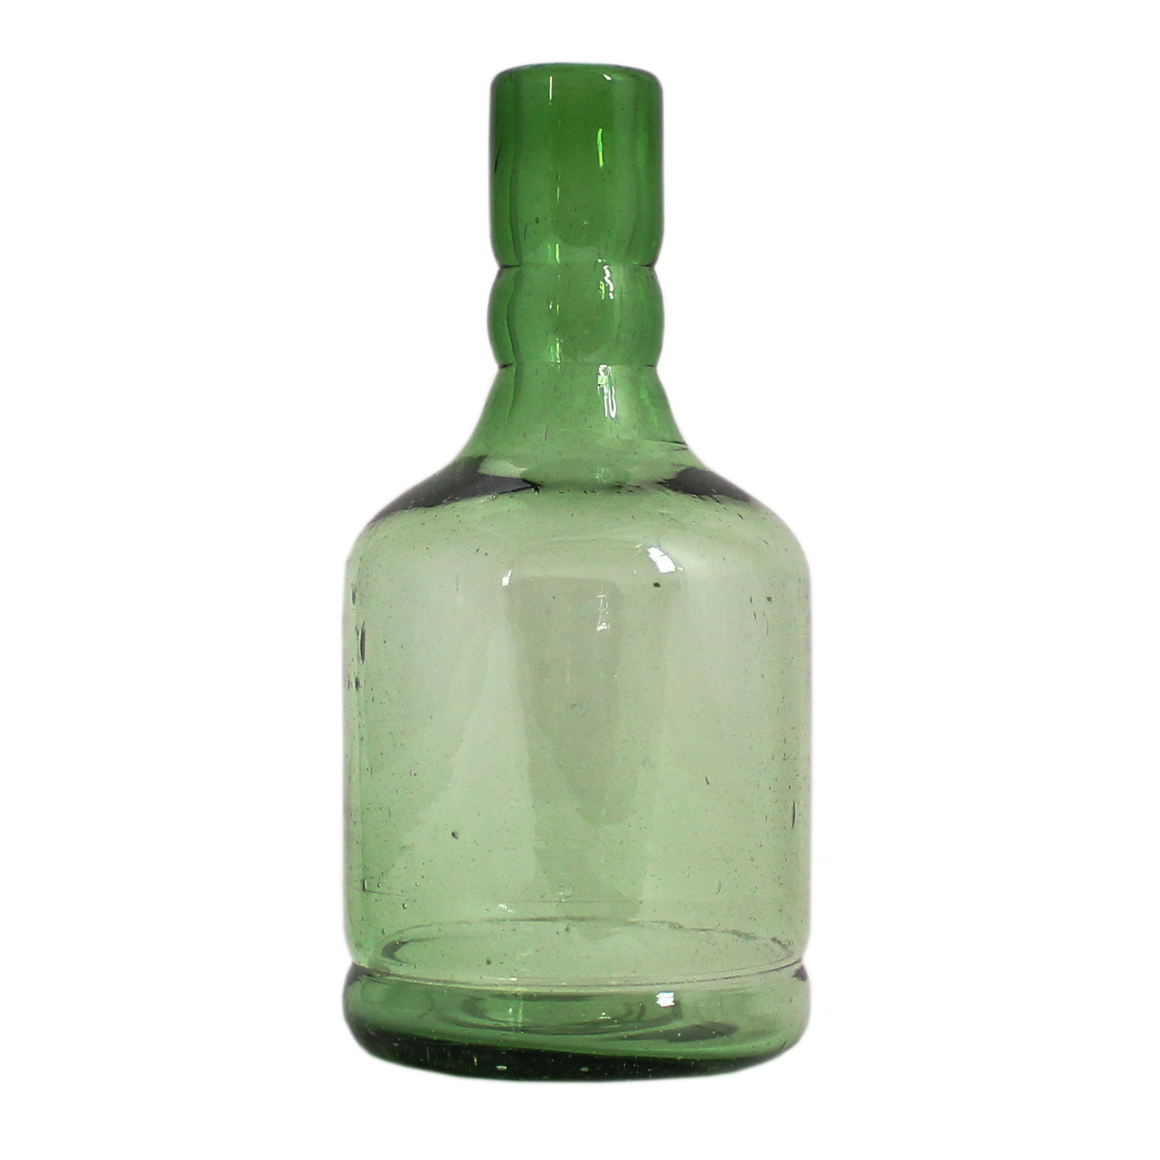 Green decanter/bottle